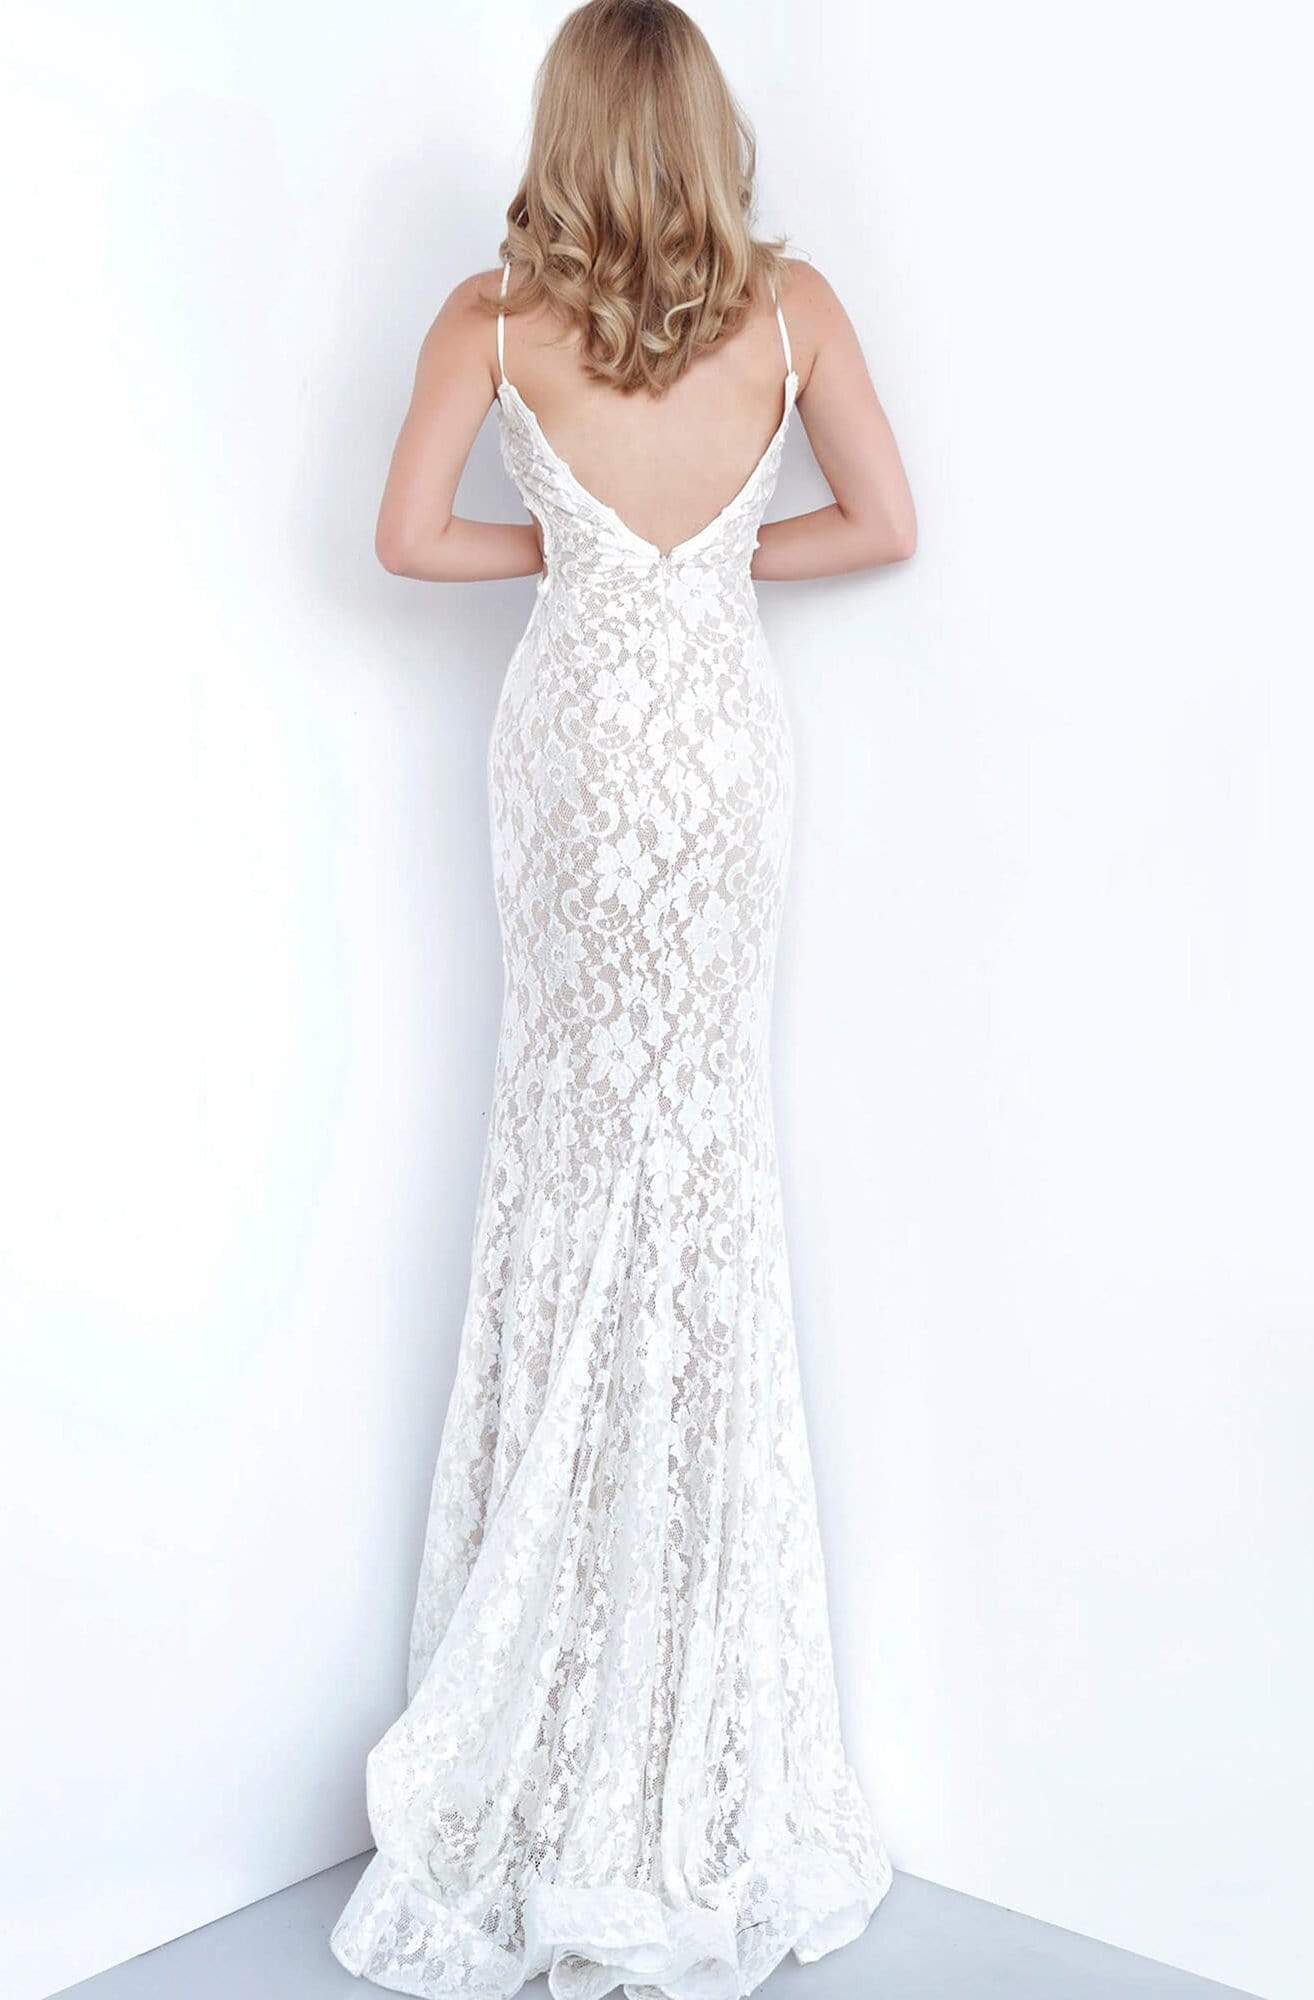 Jovani - 8082 Sexy Lace V Neck Spaghetti Straps Prom Dress In White